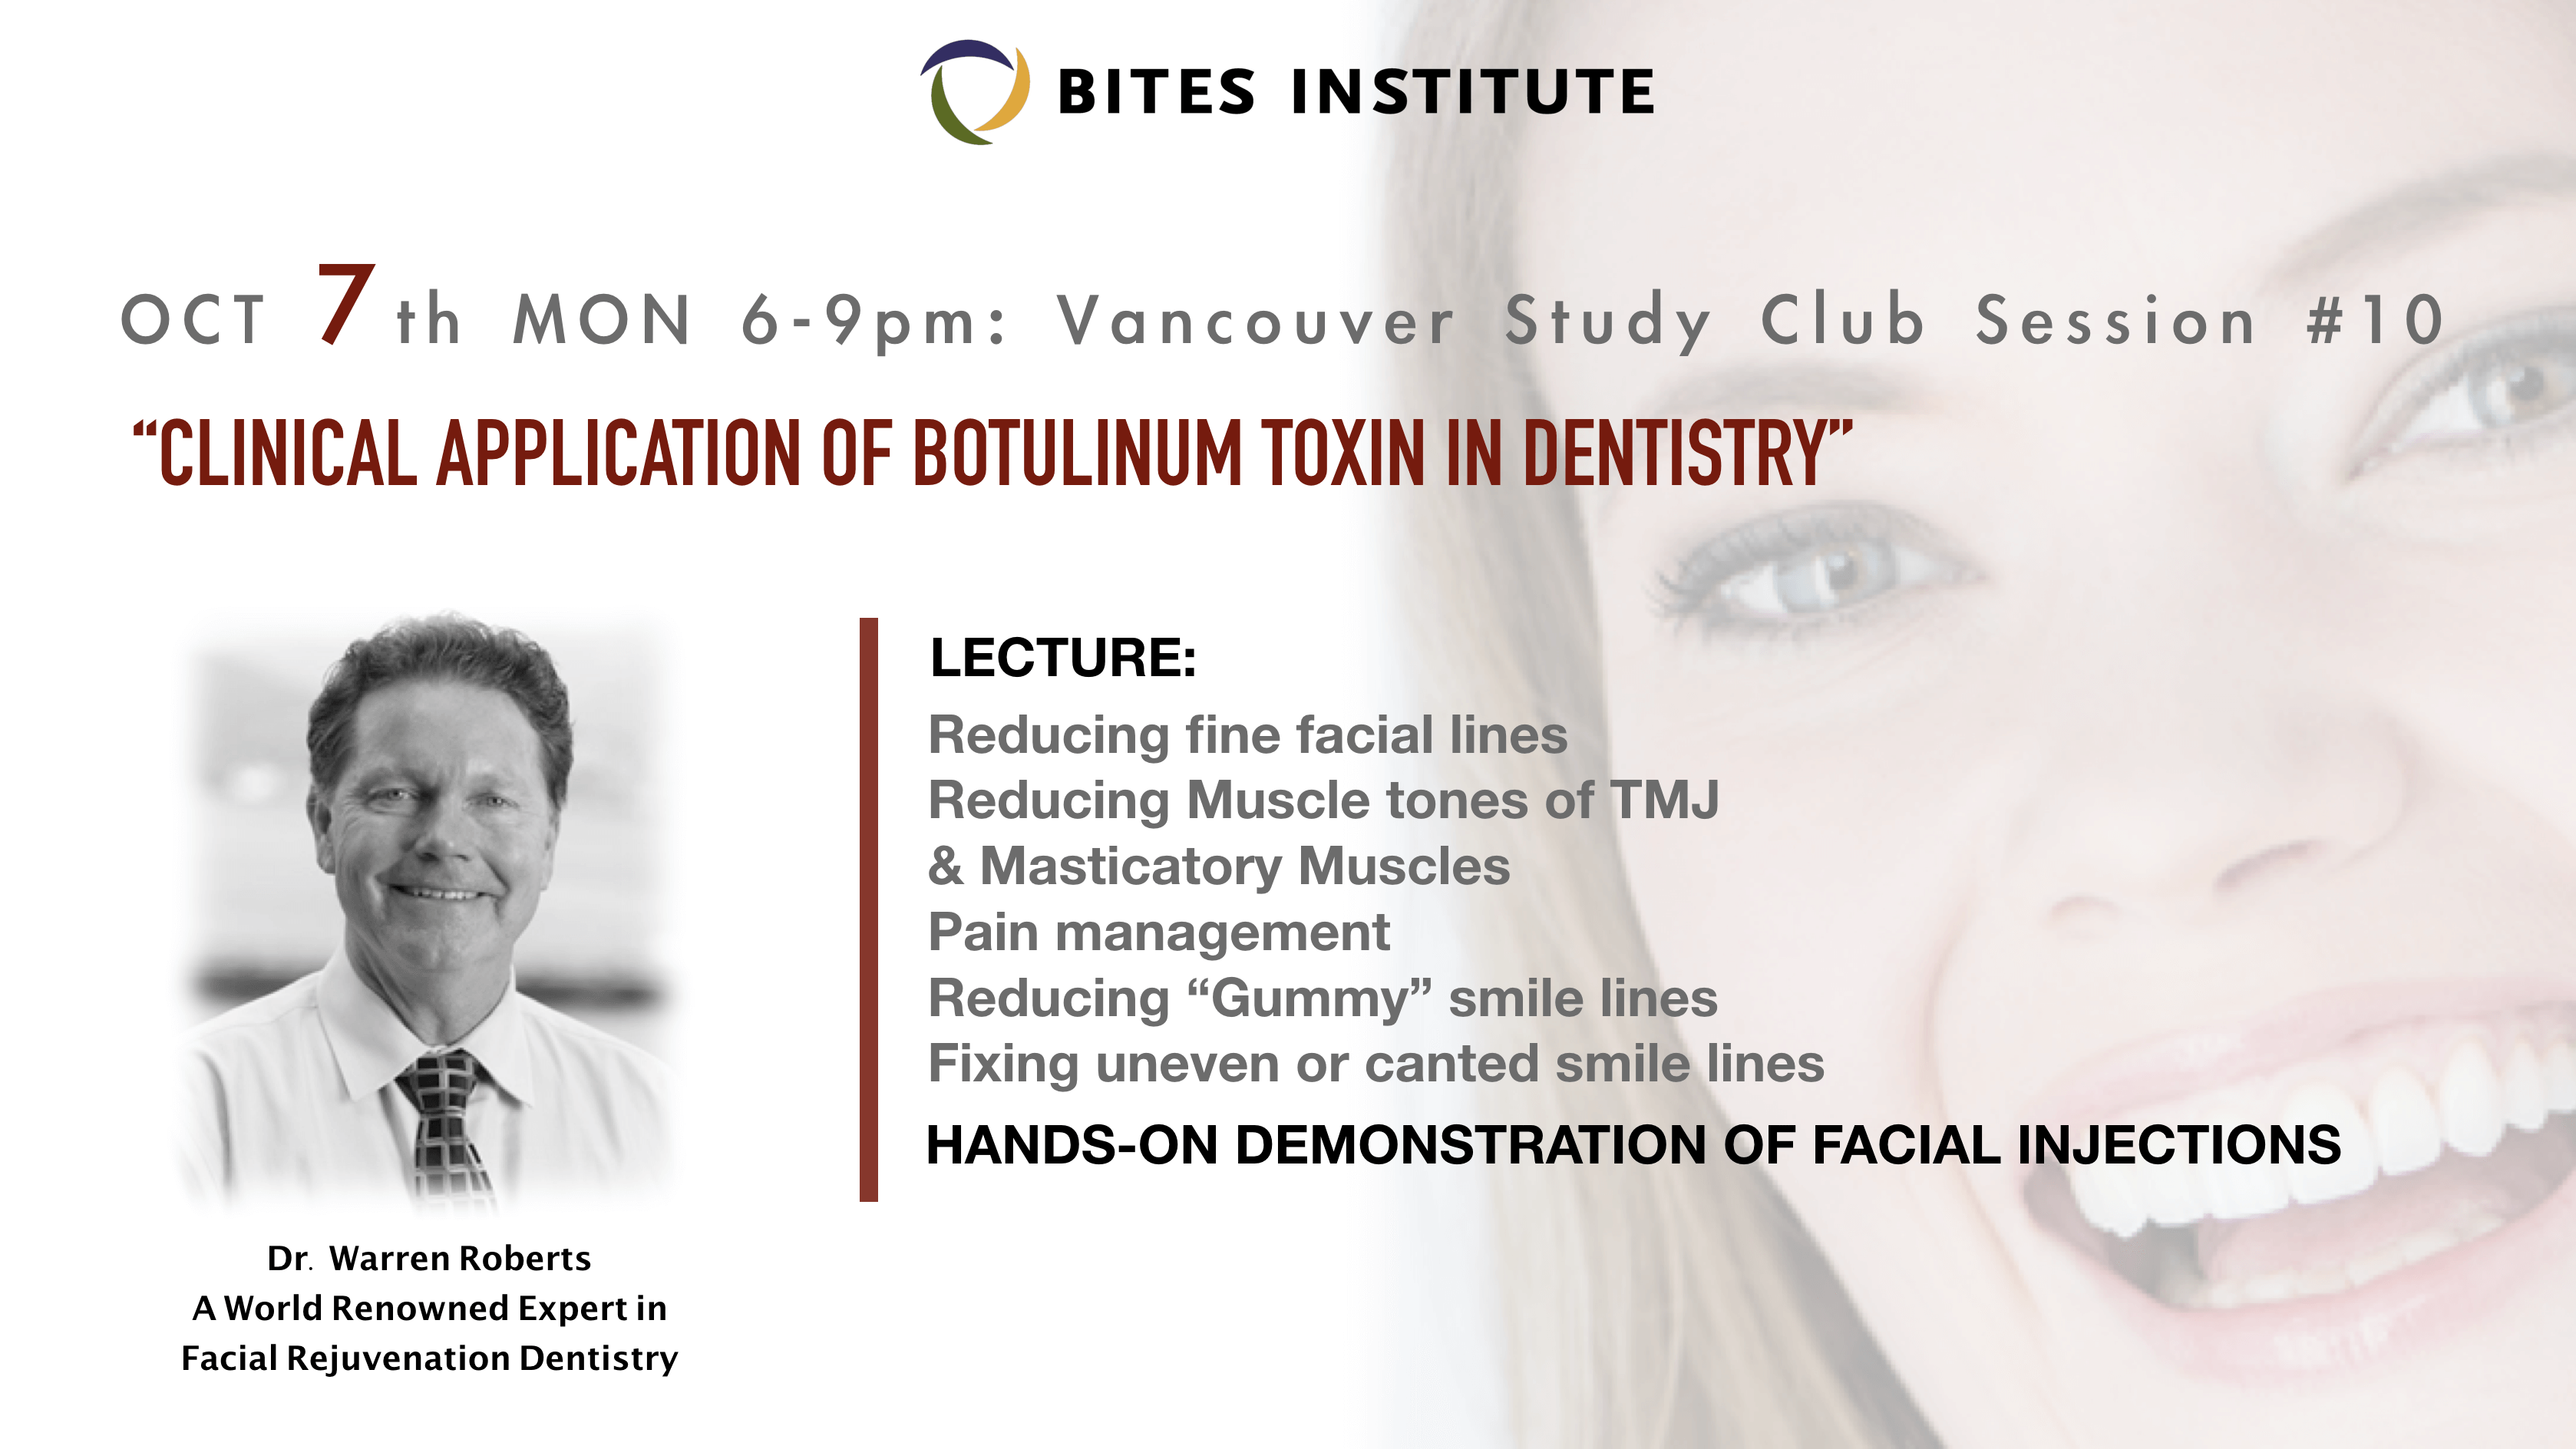 Poster of Dr. Roberts lecture on botox and implants at the BITES Institute in Buranby, BC